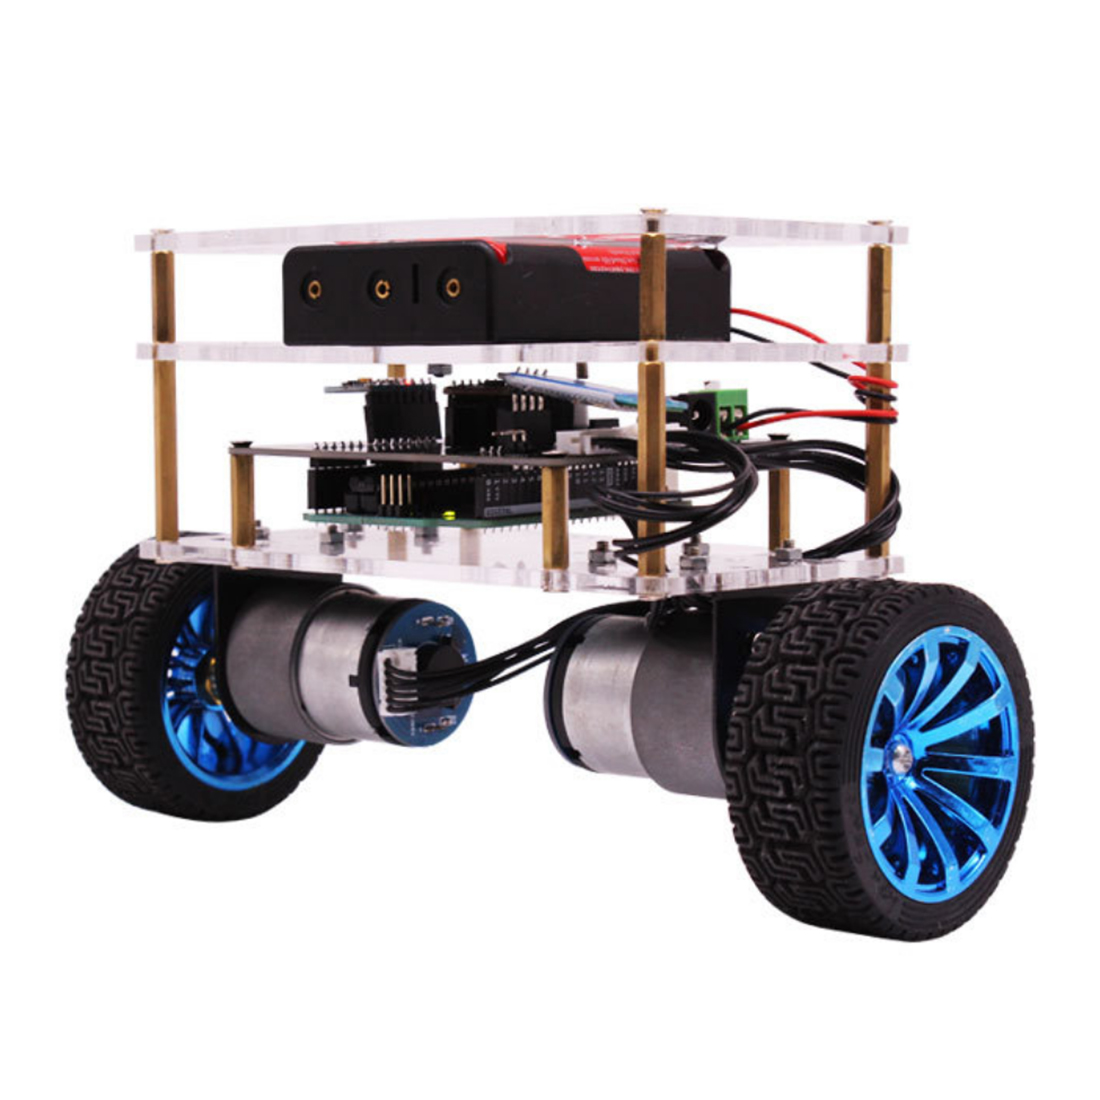 Balance Robot Car Compatible with Arduino Electronics Programmable Kit Education Robotics Support C Language for Kids and AdultBalance Robot Car Compatible with Arduino Electronics Programmable Kit Education Robotics Support C Language for Kids and Adult